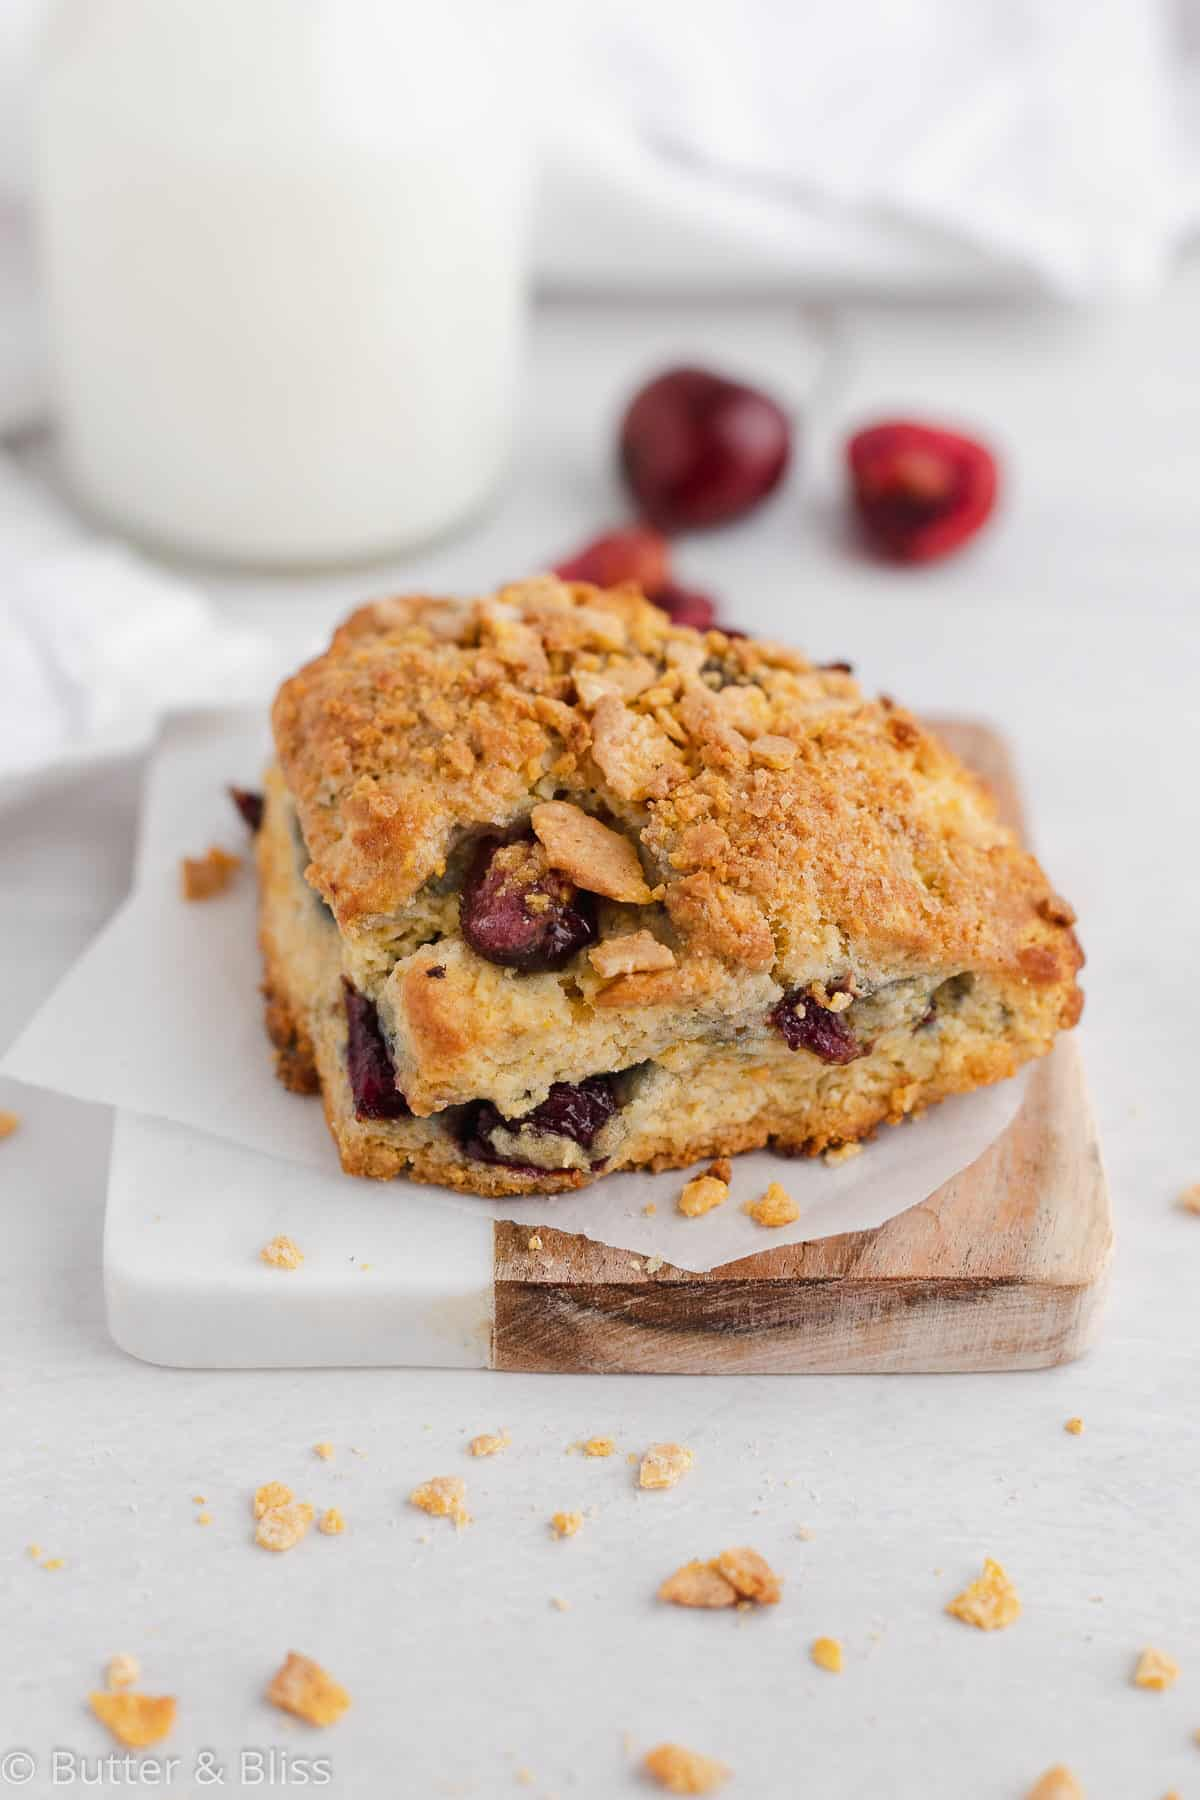 Cherry cornmeal scone with cornflake topping on a plate